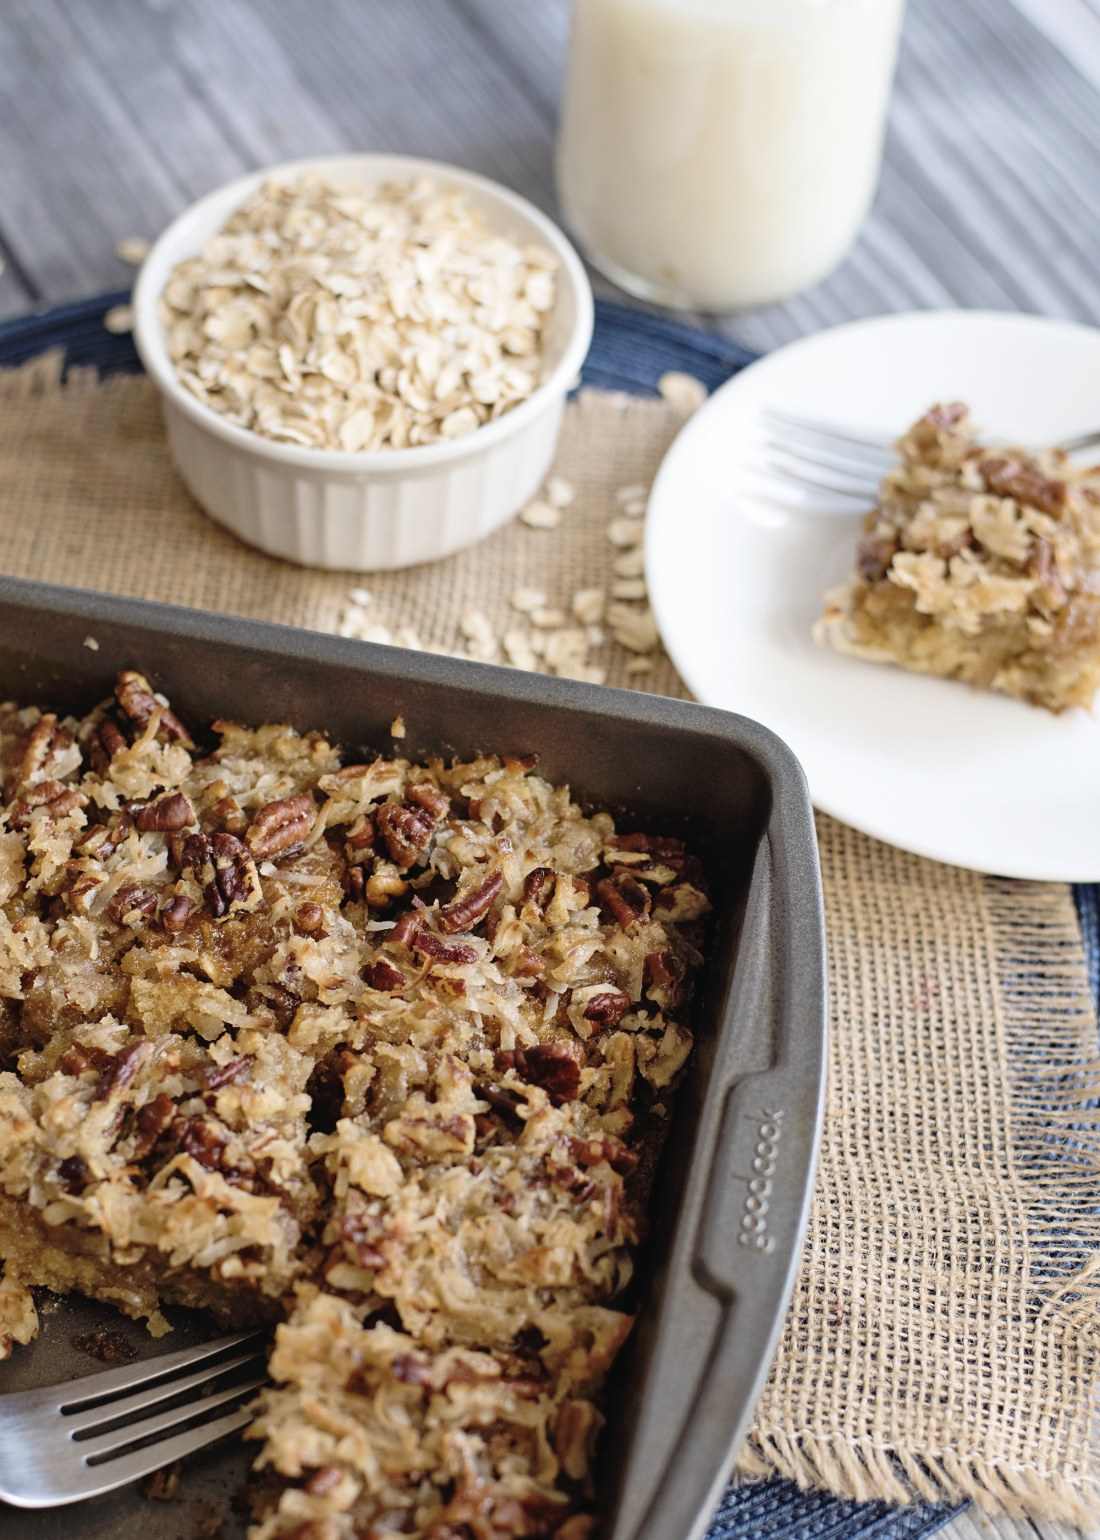 Bake up a delicious Oatmeal Cake with Pecan Frosting. Just like grandma used to make it, serve straight from the pan.